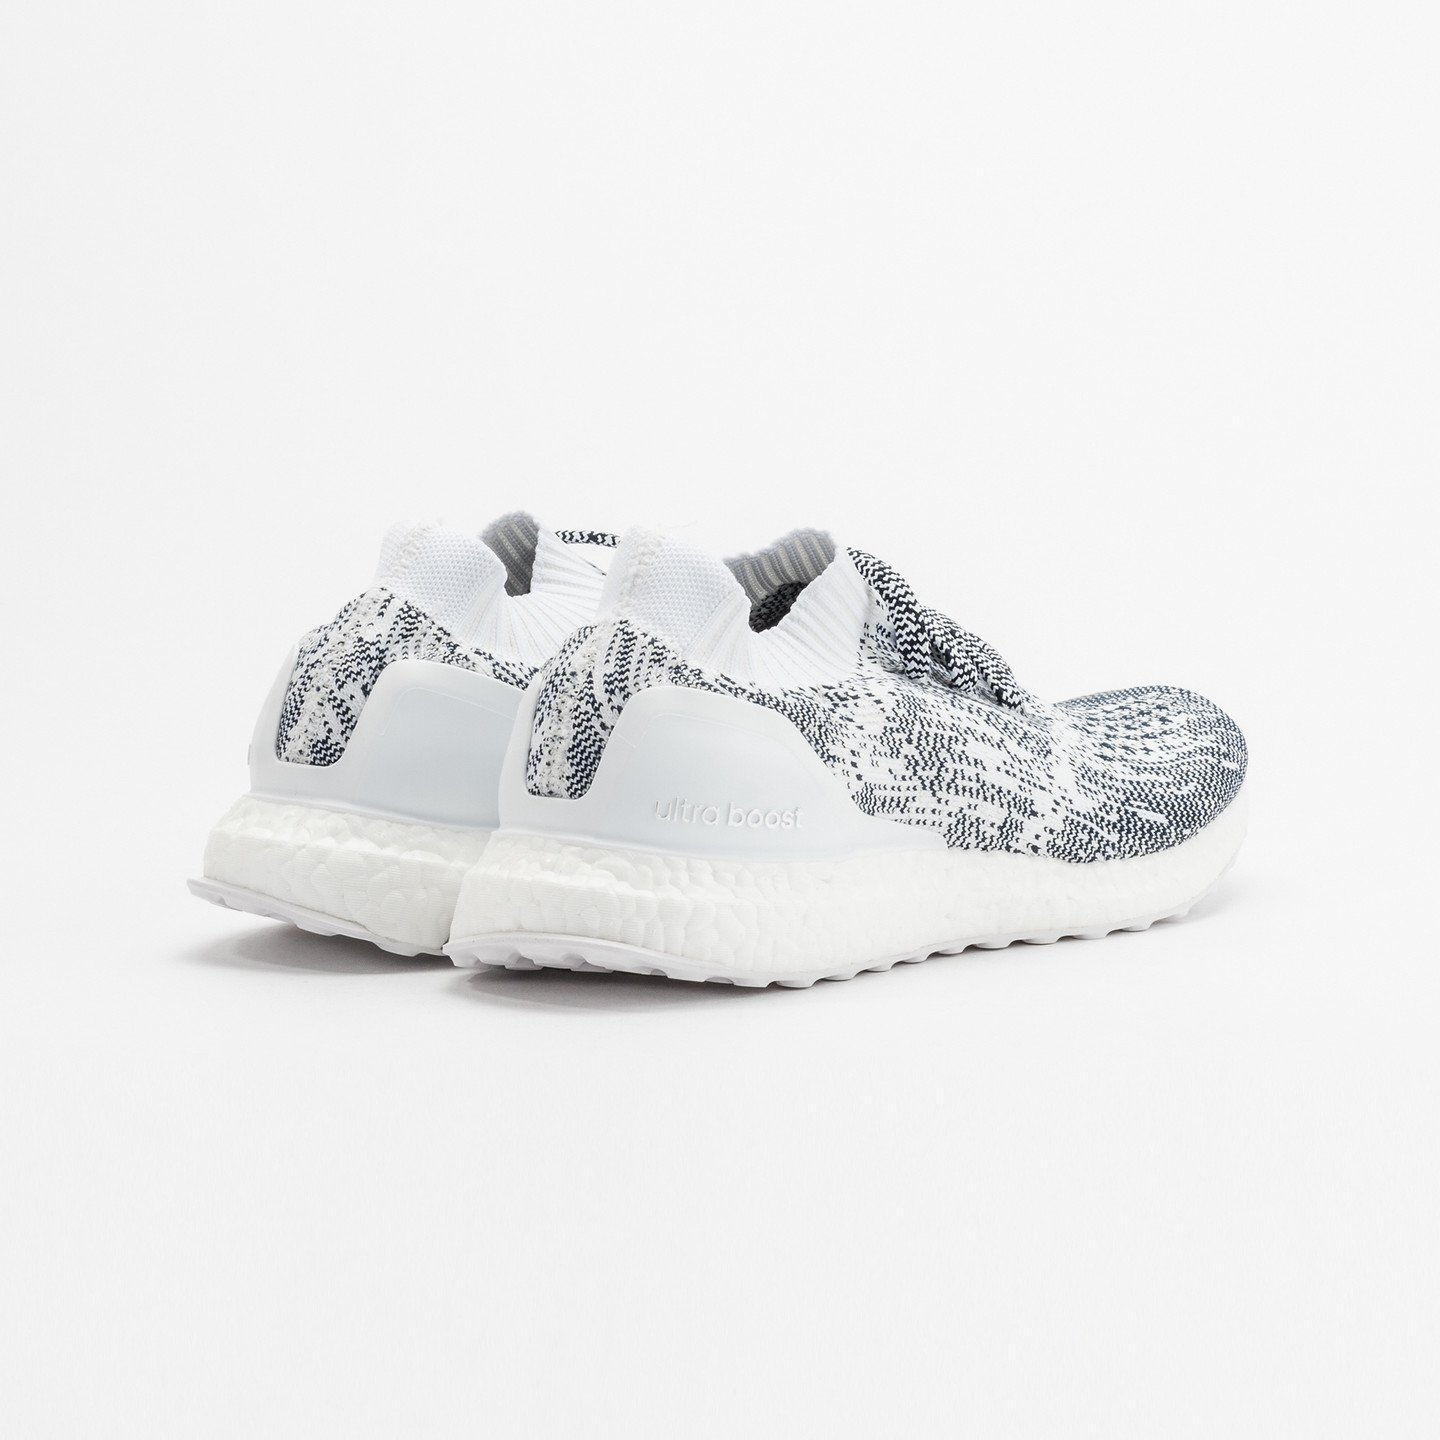 Adidas Ultra Boost Uncaged 'Oreo' White / Black BA9616-42